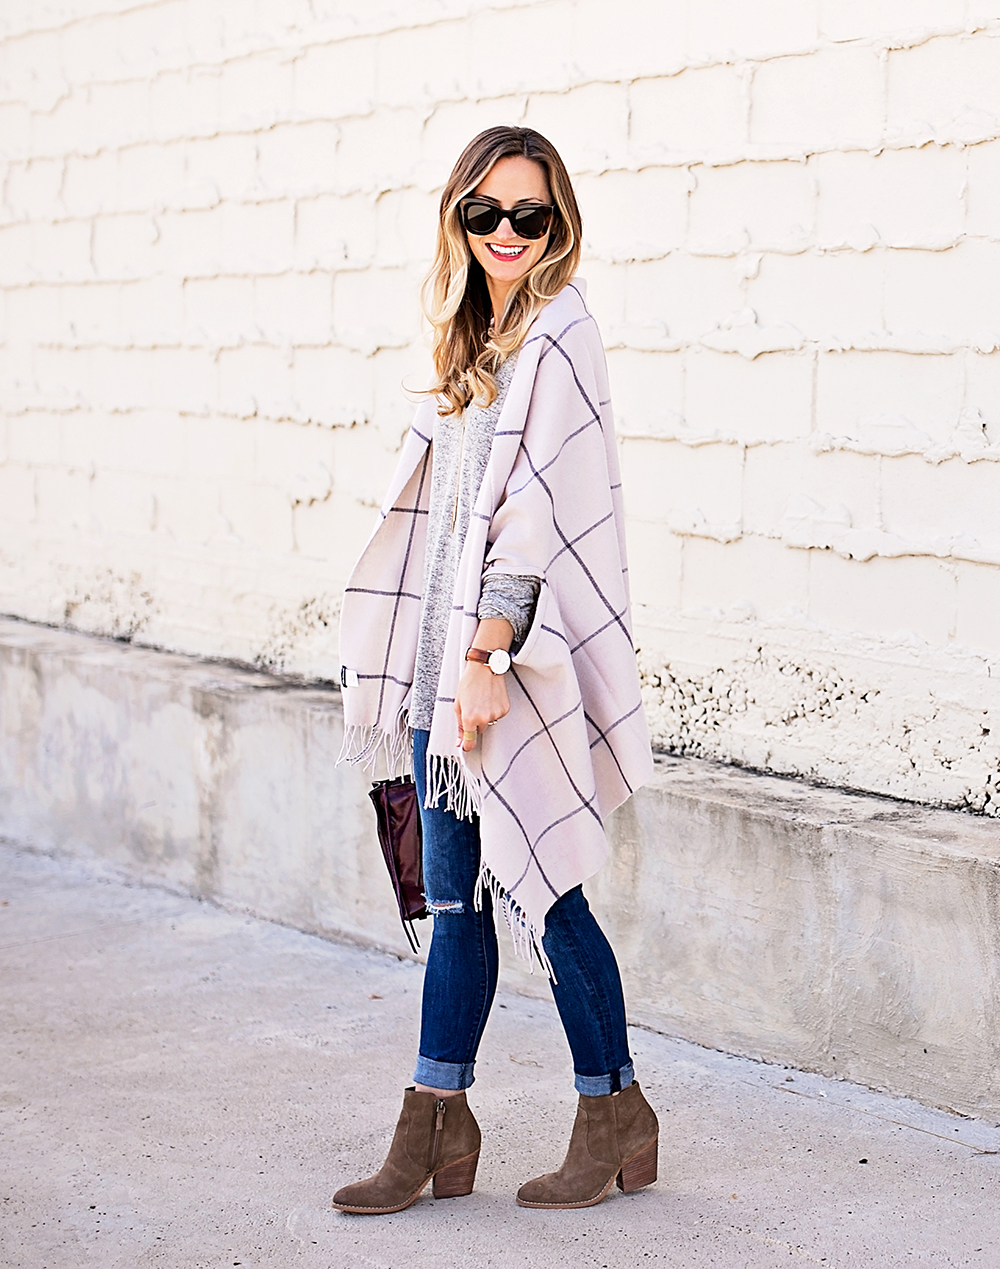 livvyland-blog-olivia-watson-nordstrom-fall-outfit-grey-sweater-booties-madewell-plaid-poncho-rebecca-minkoff-regan-satchel-burgundy-oxblood-5